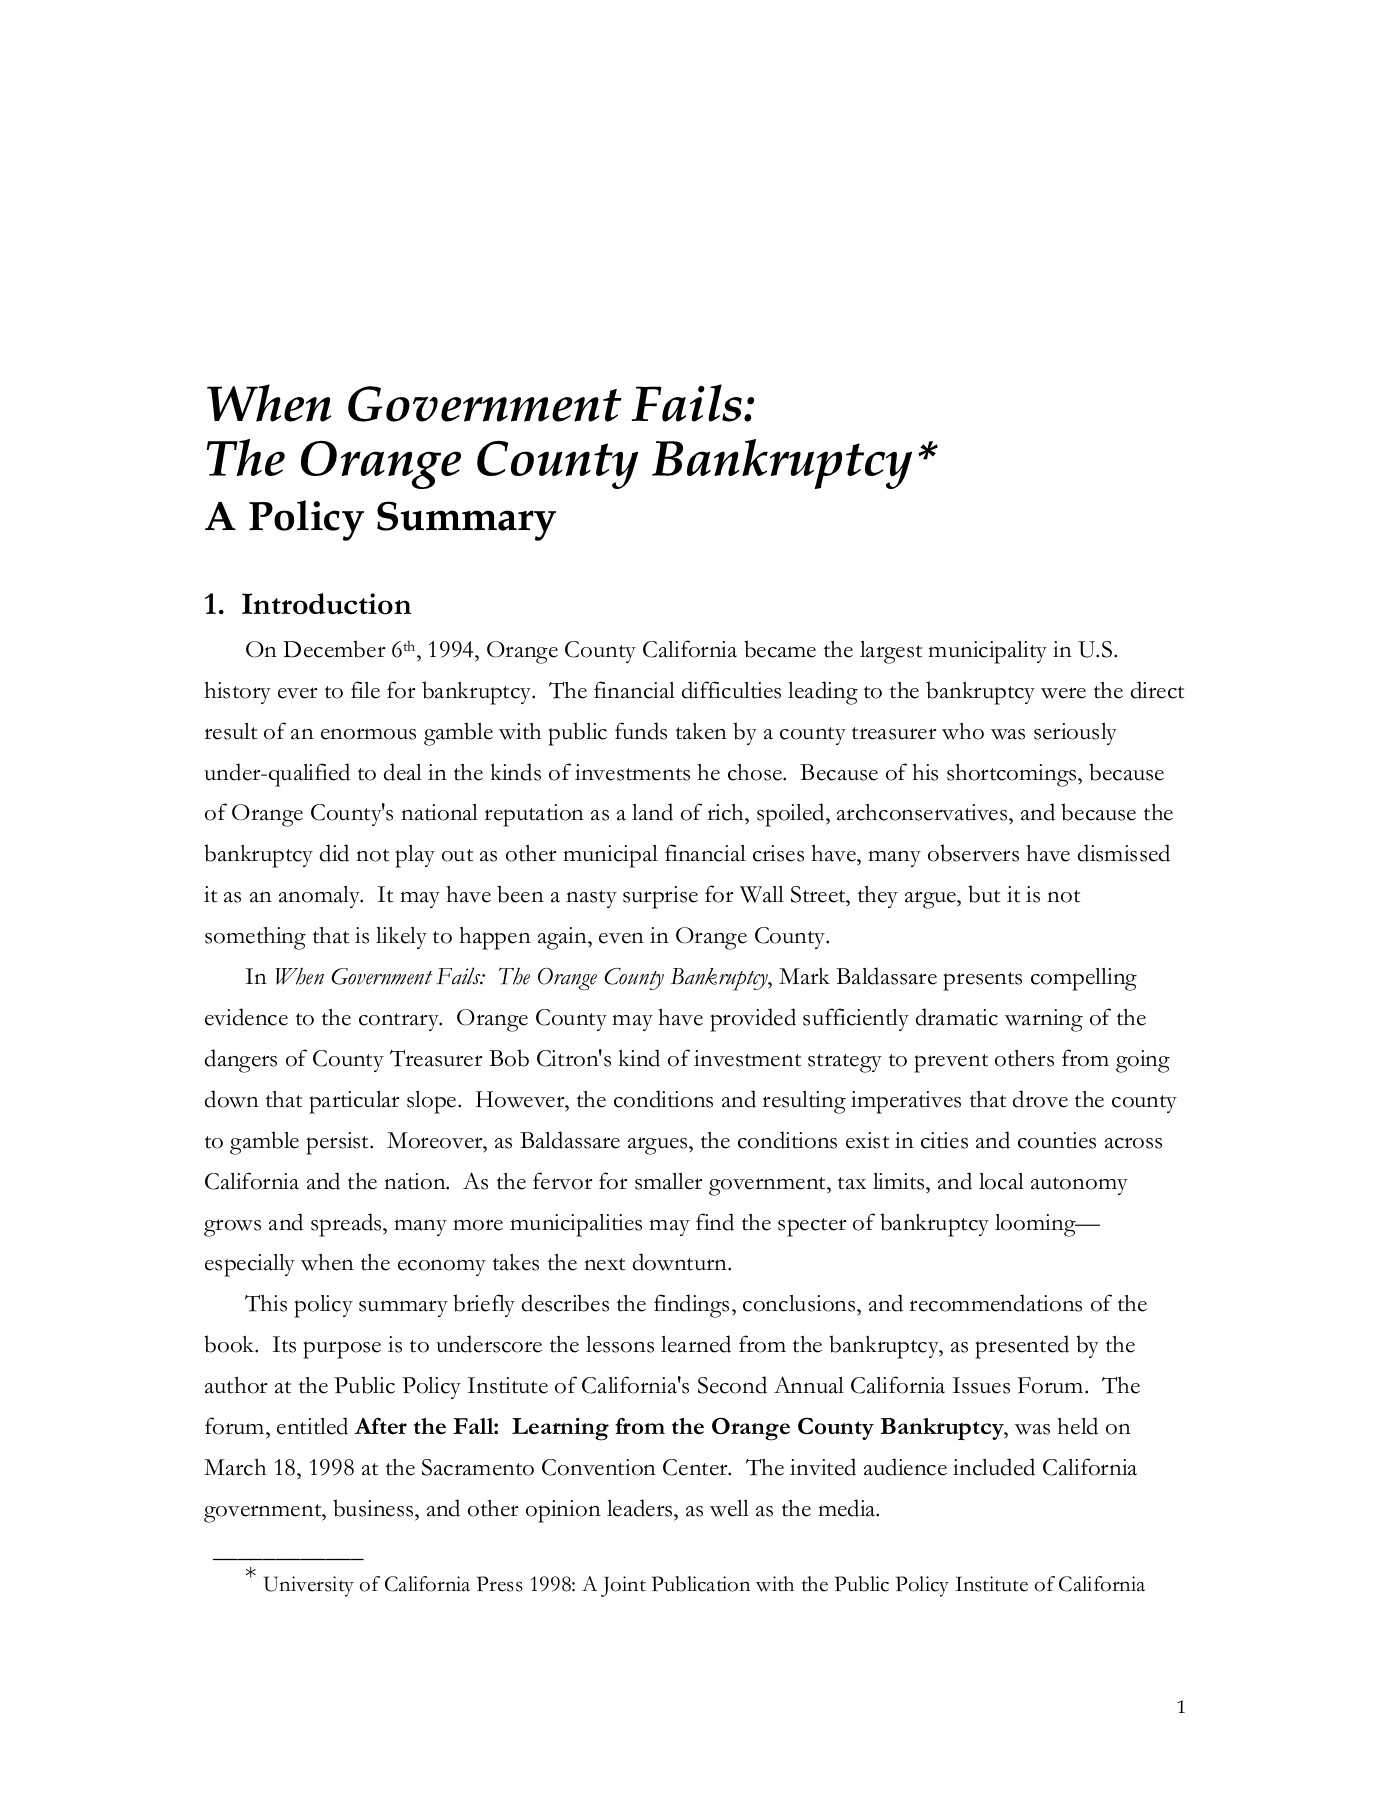 When Government Fails: The Orange County Bankruptcy